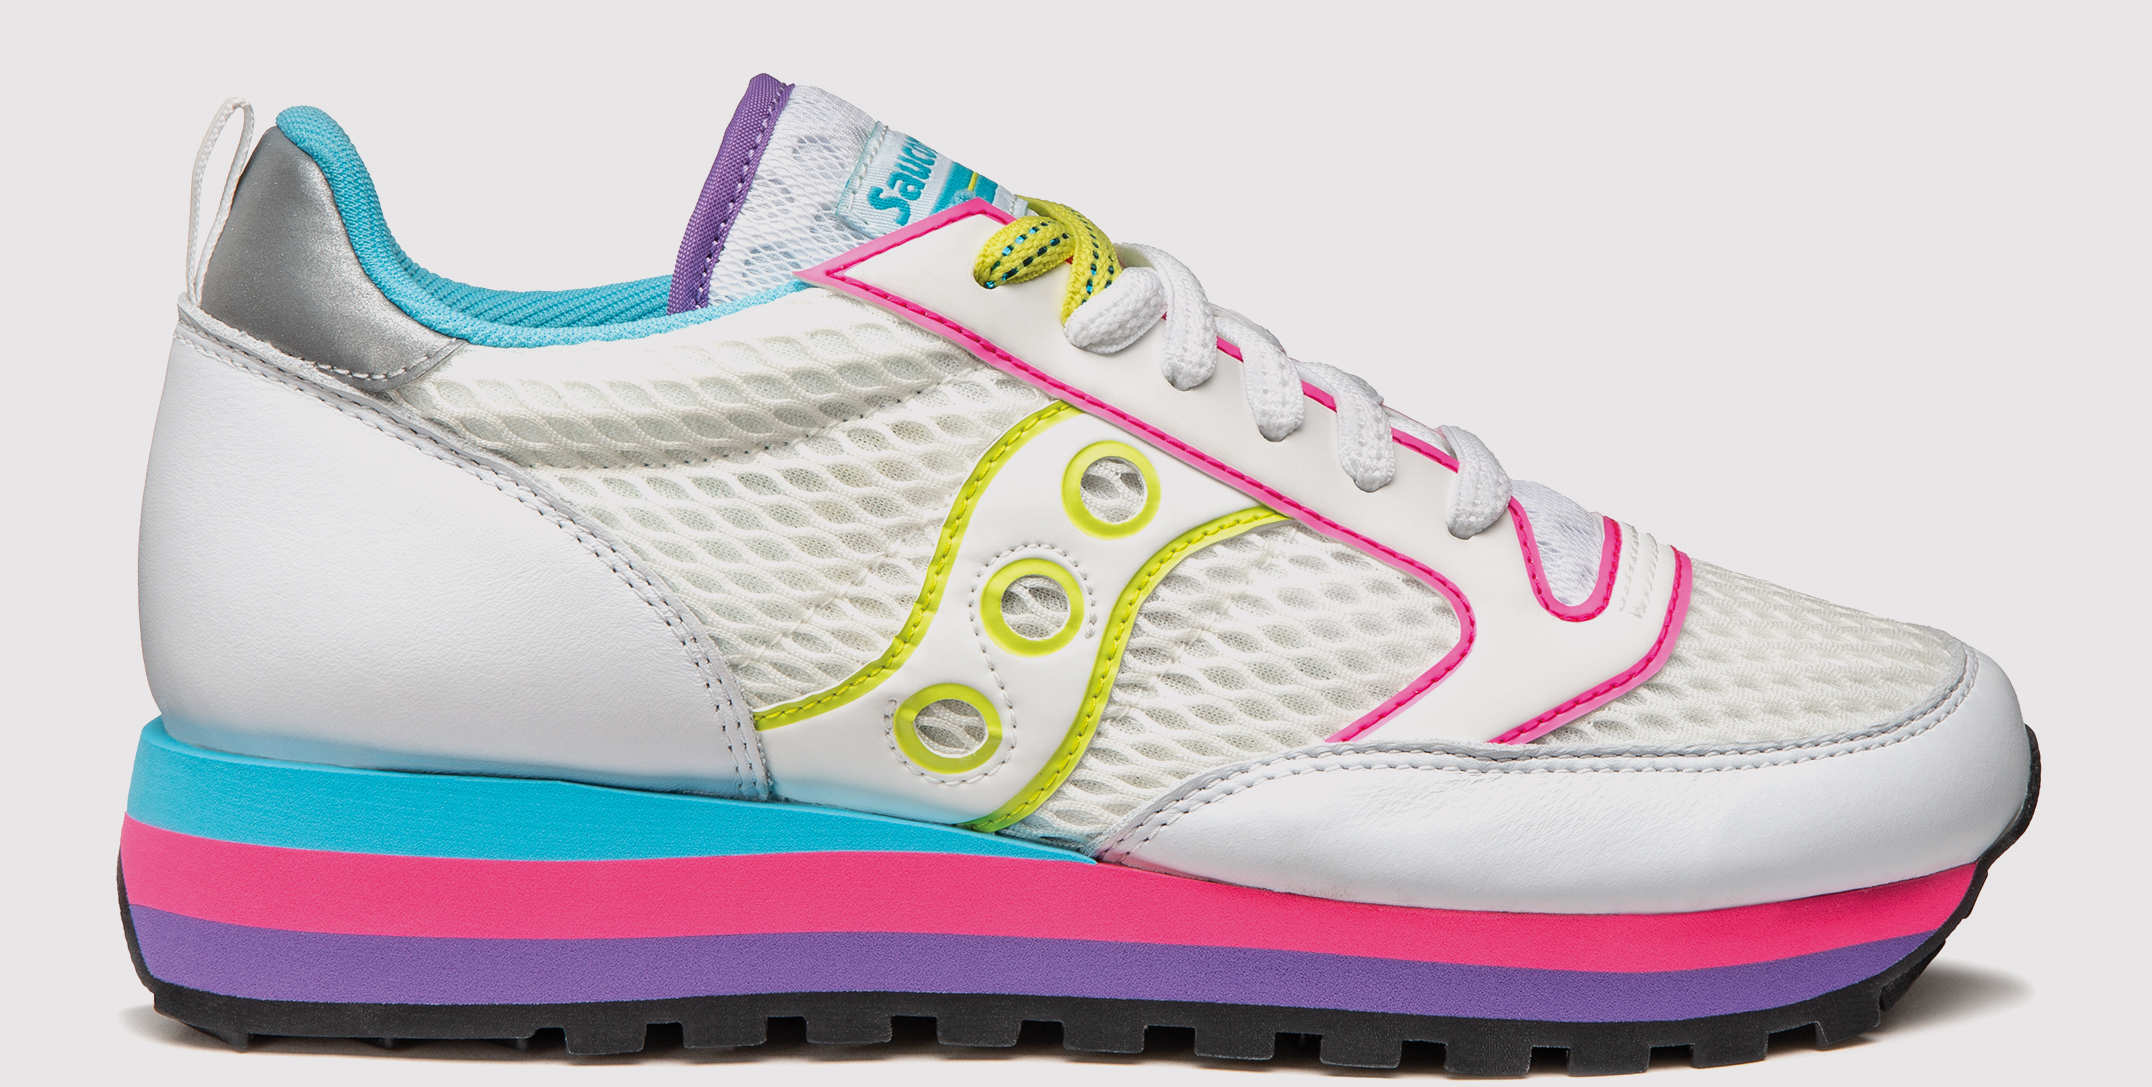 Pair of Jazz Triple shoes in white and neon yellow, pink, blue and purple colors.